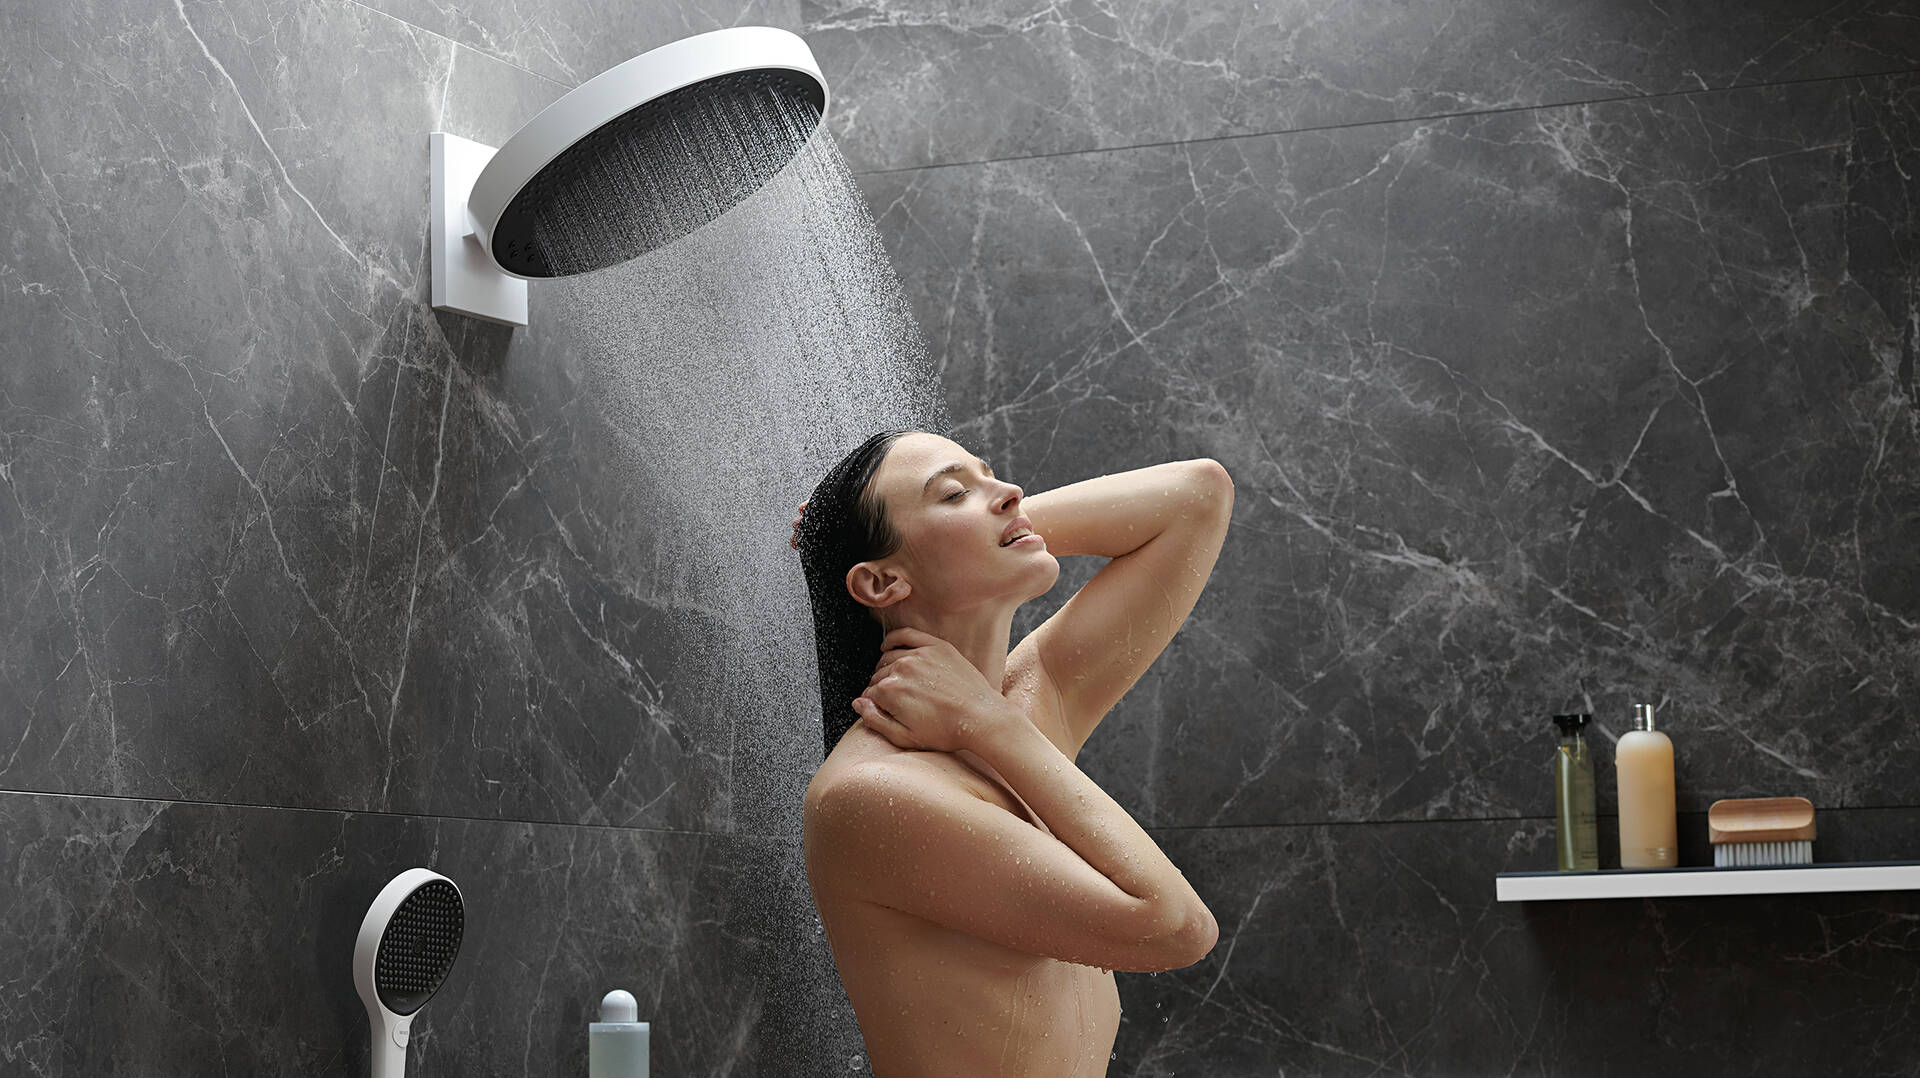 hansgrohe PowderRain in Rainfinity Kopfbrause.